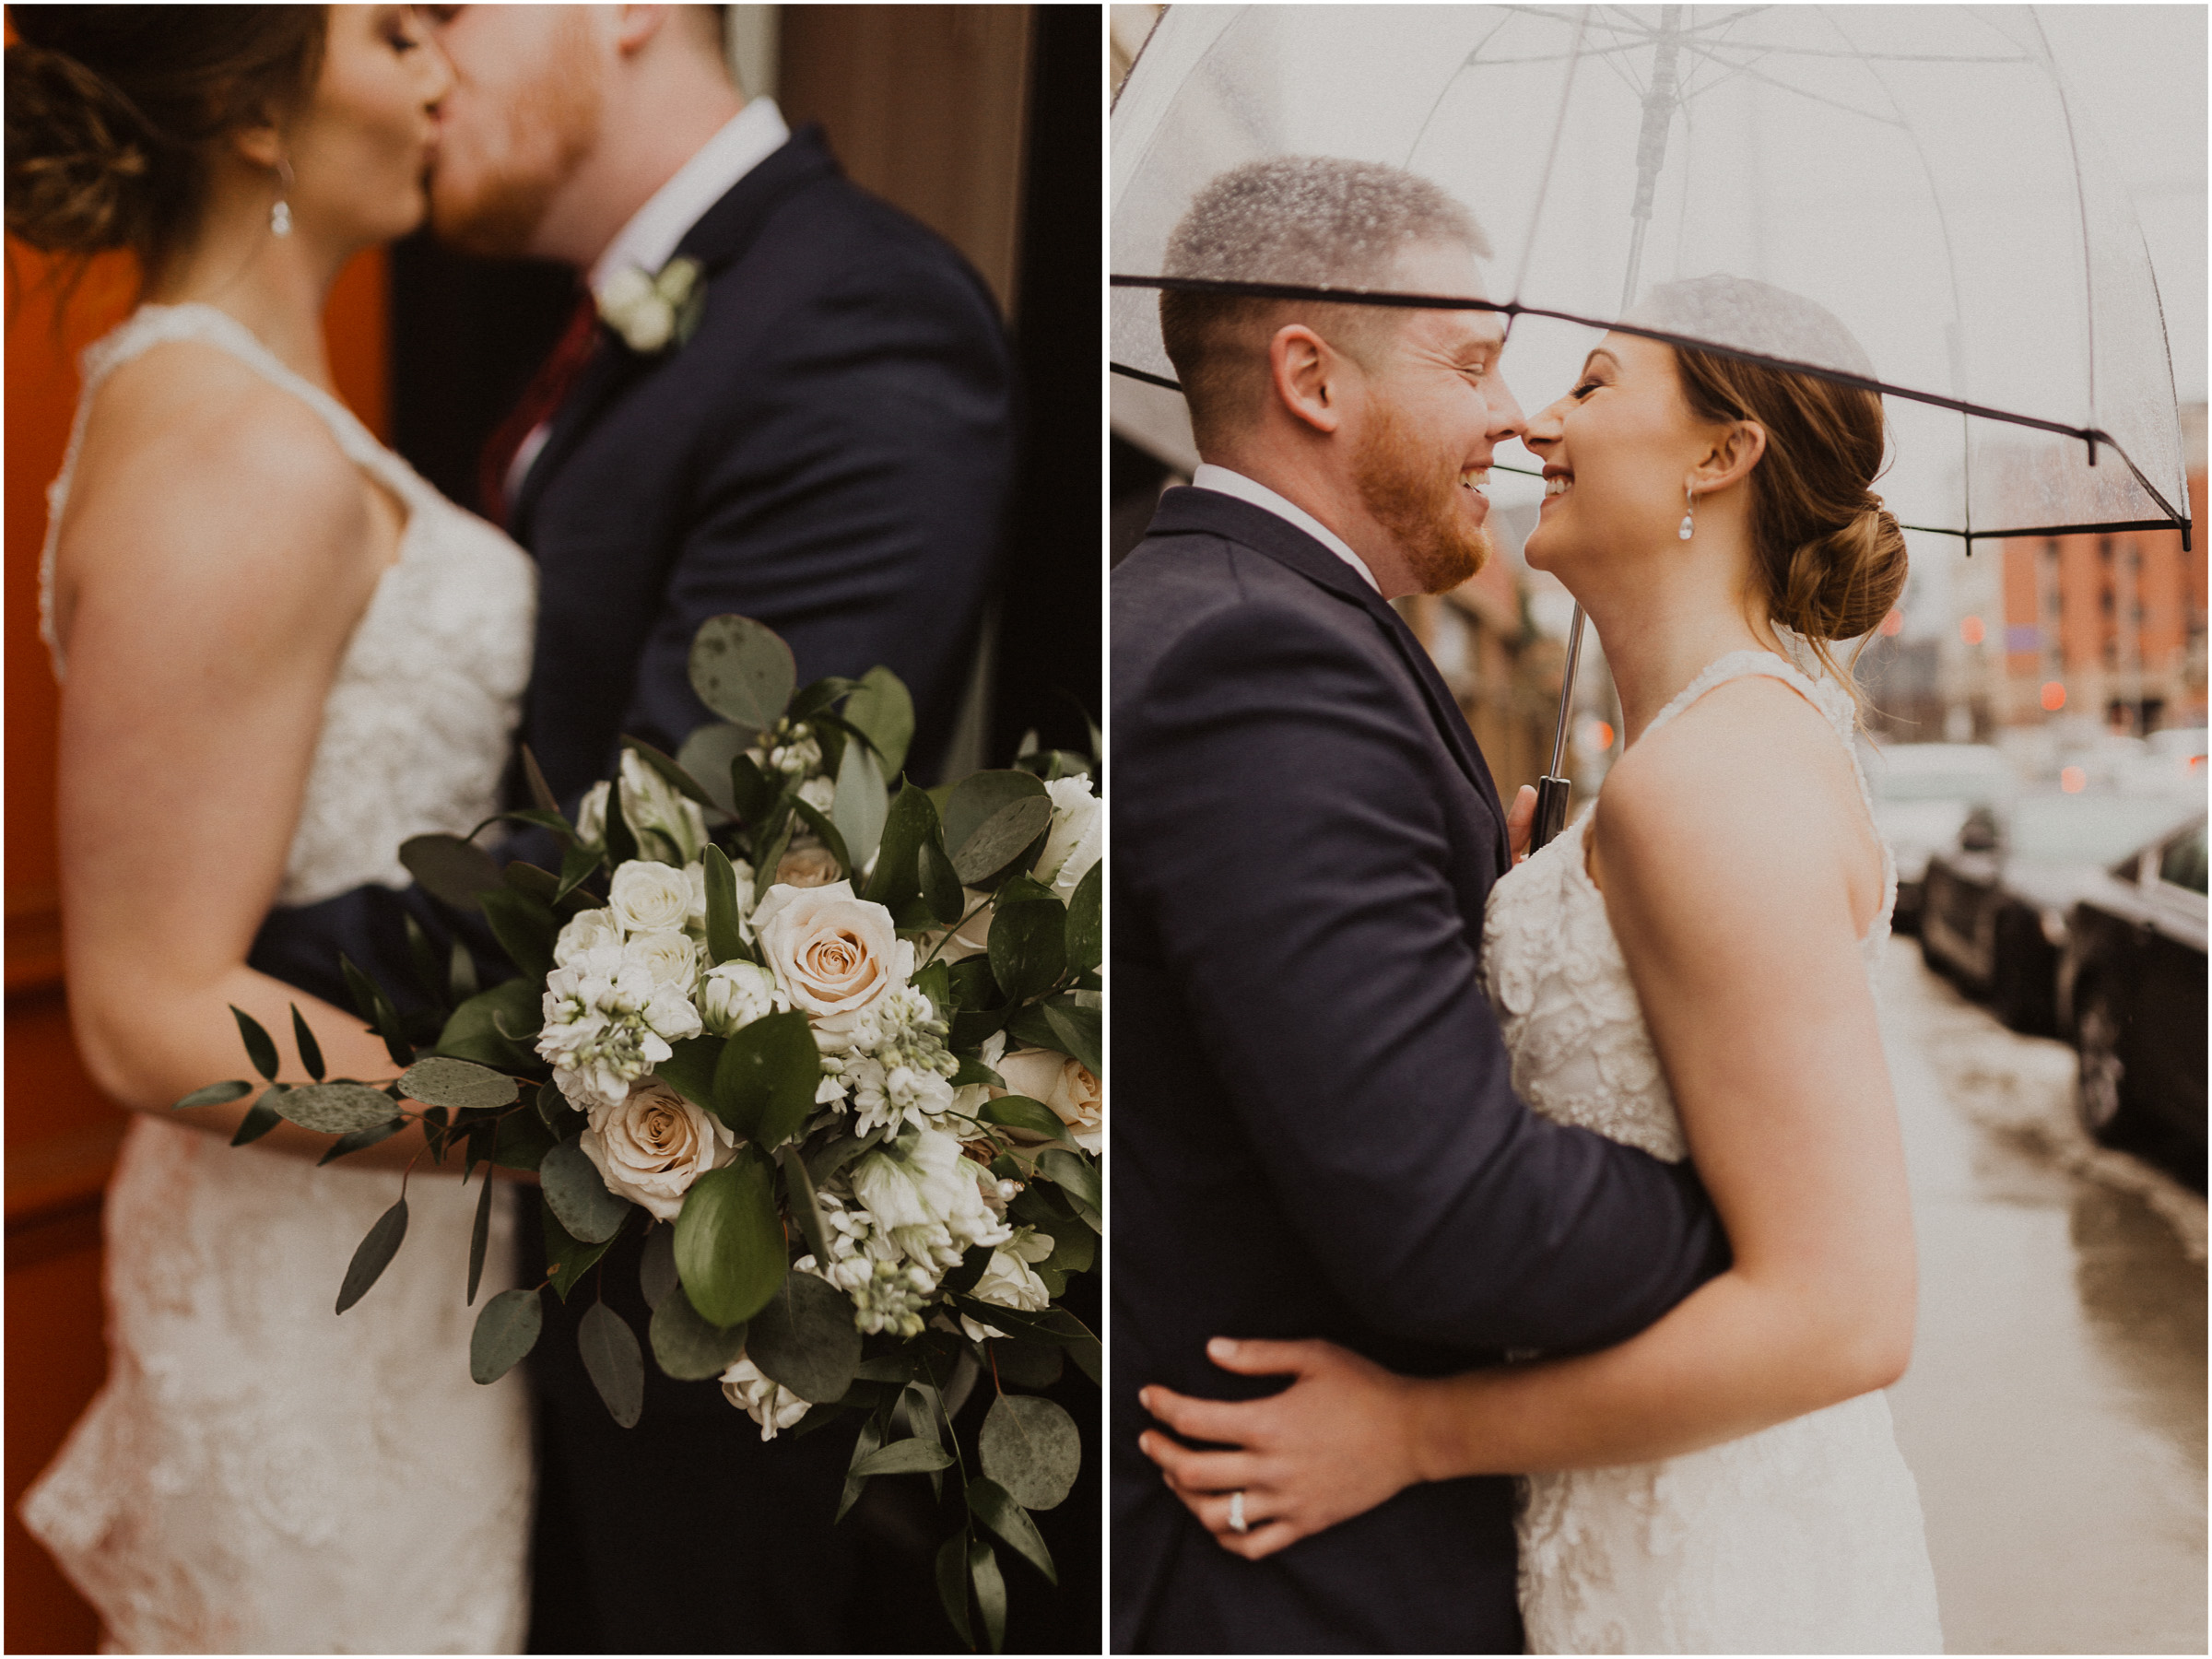 alyssa barletter photography 2016 main kansas city wedding rainy day photographer grace and justin magott-31.jpg